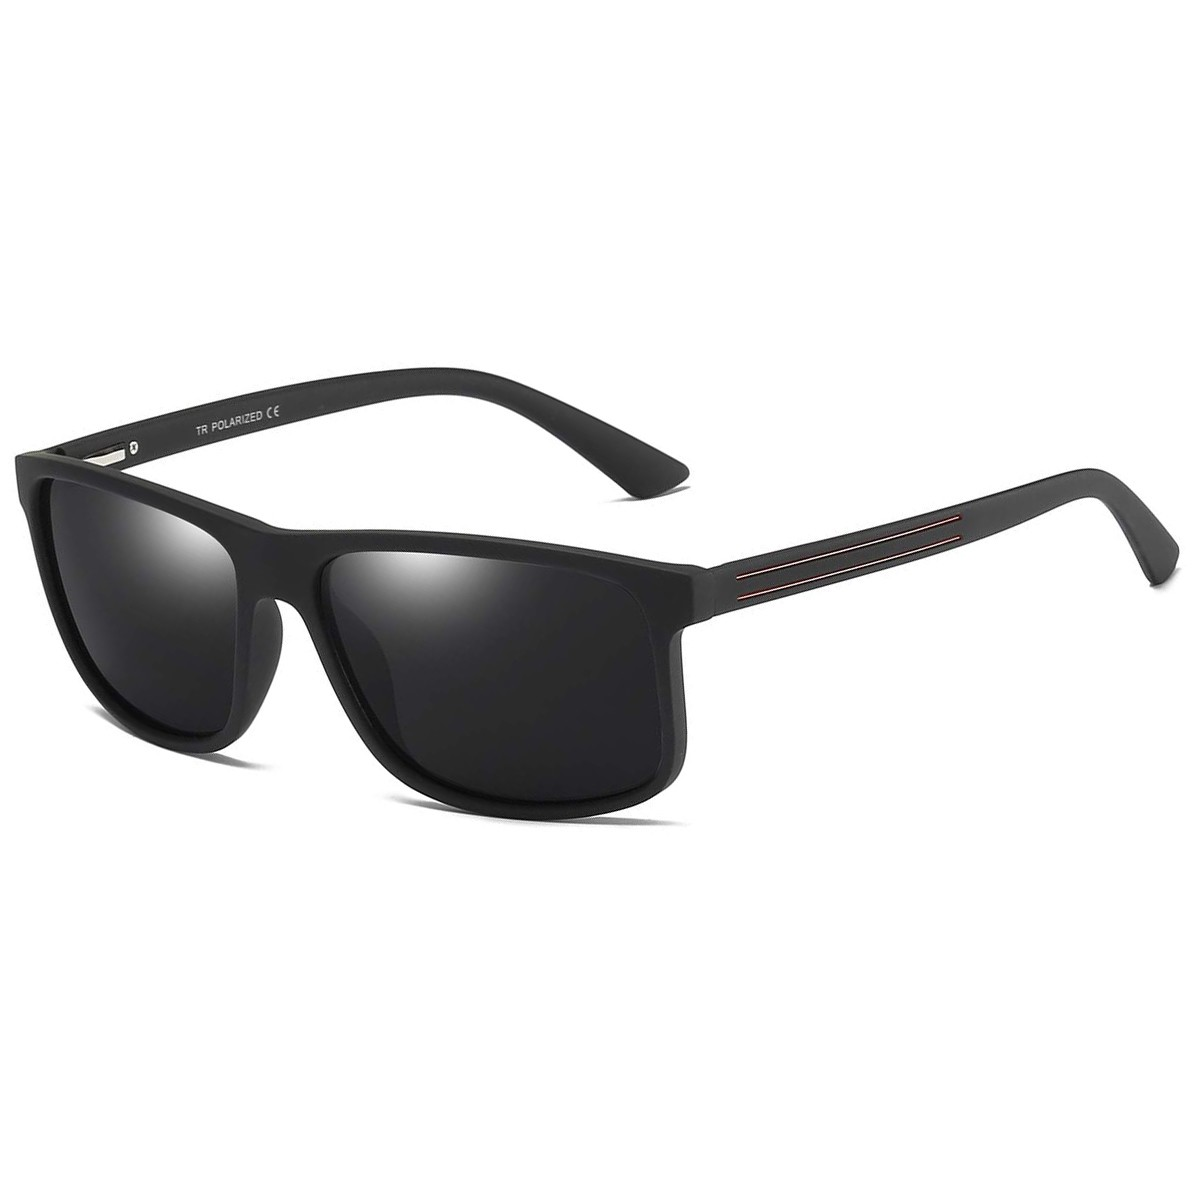 Sunglasses - Assorted Styles